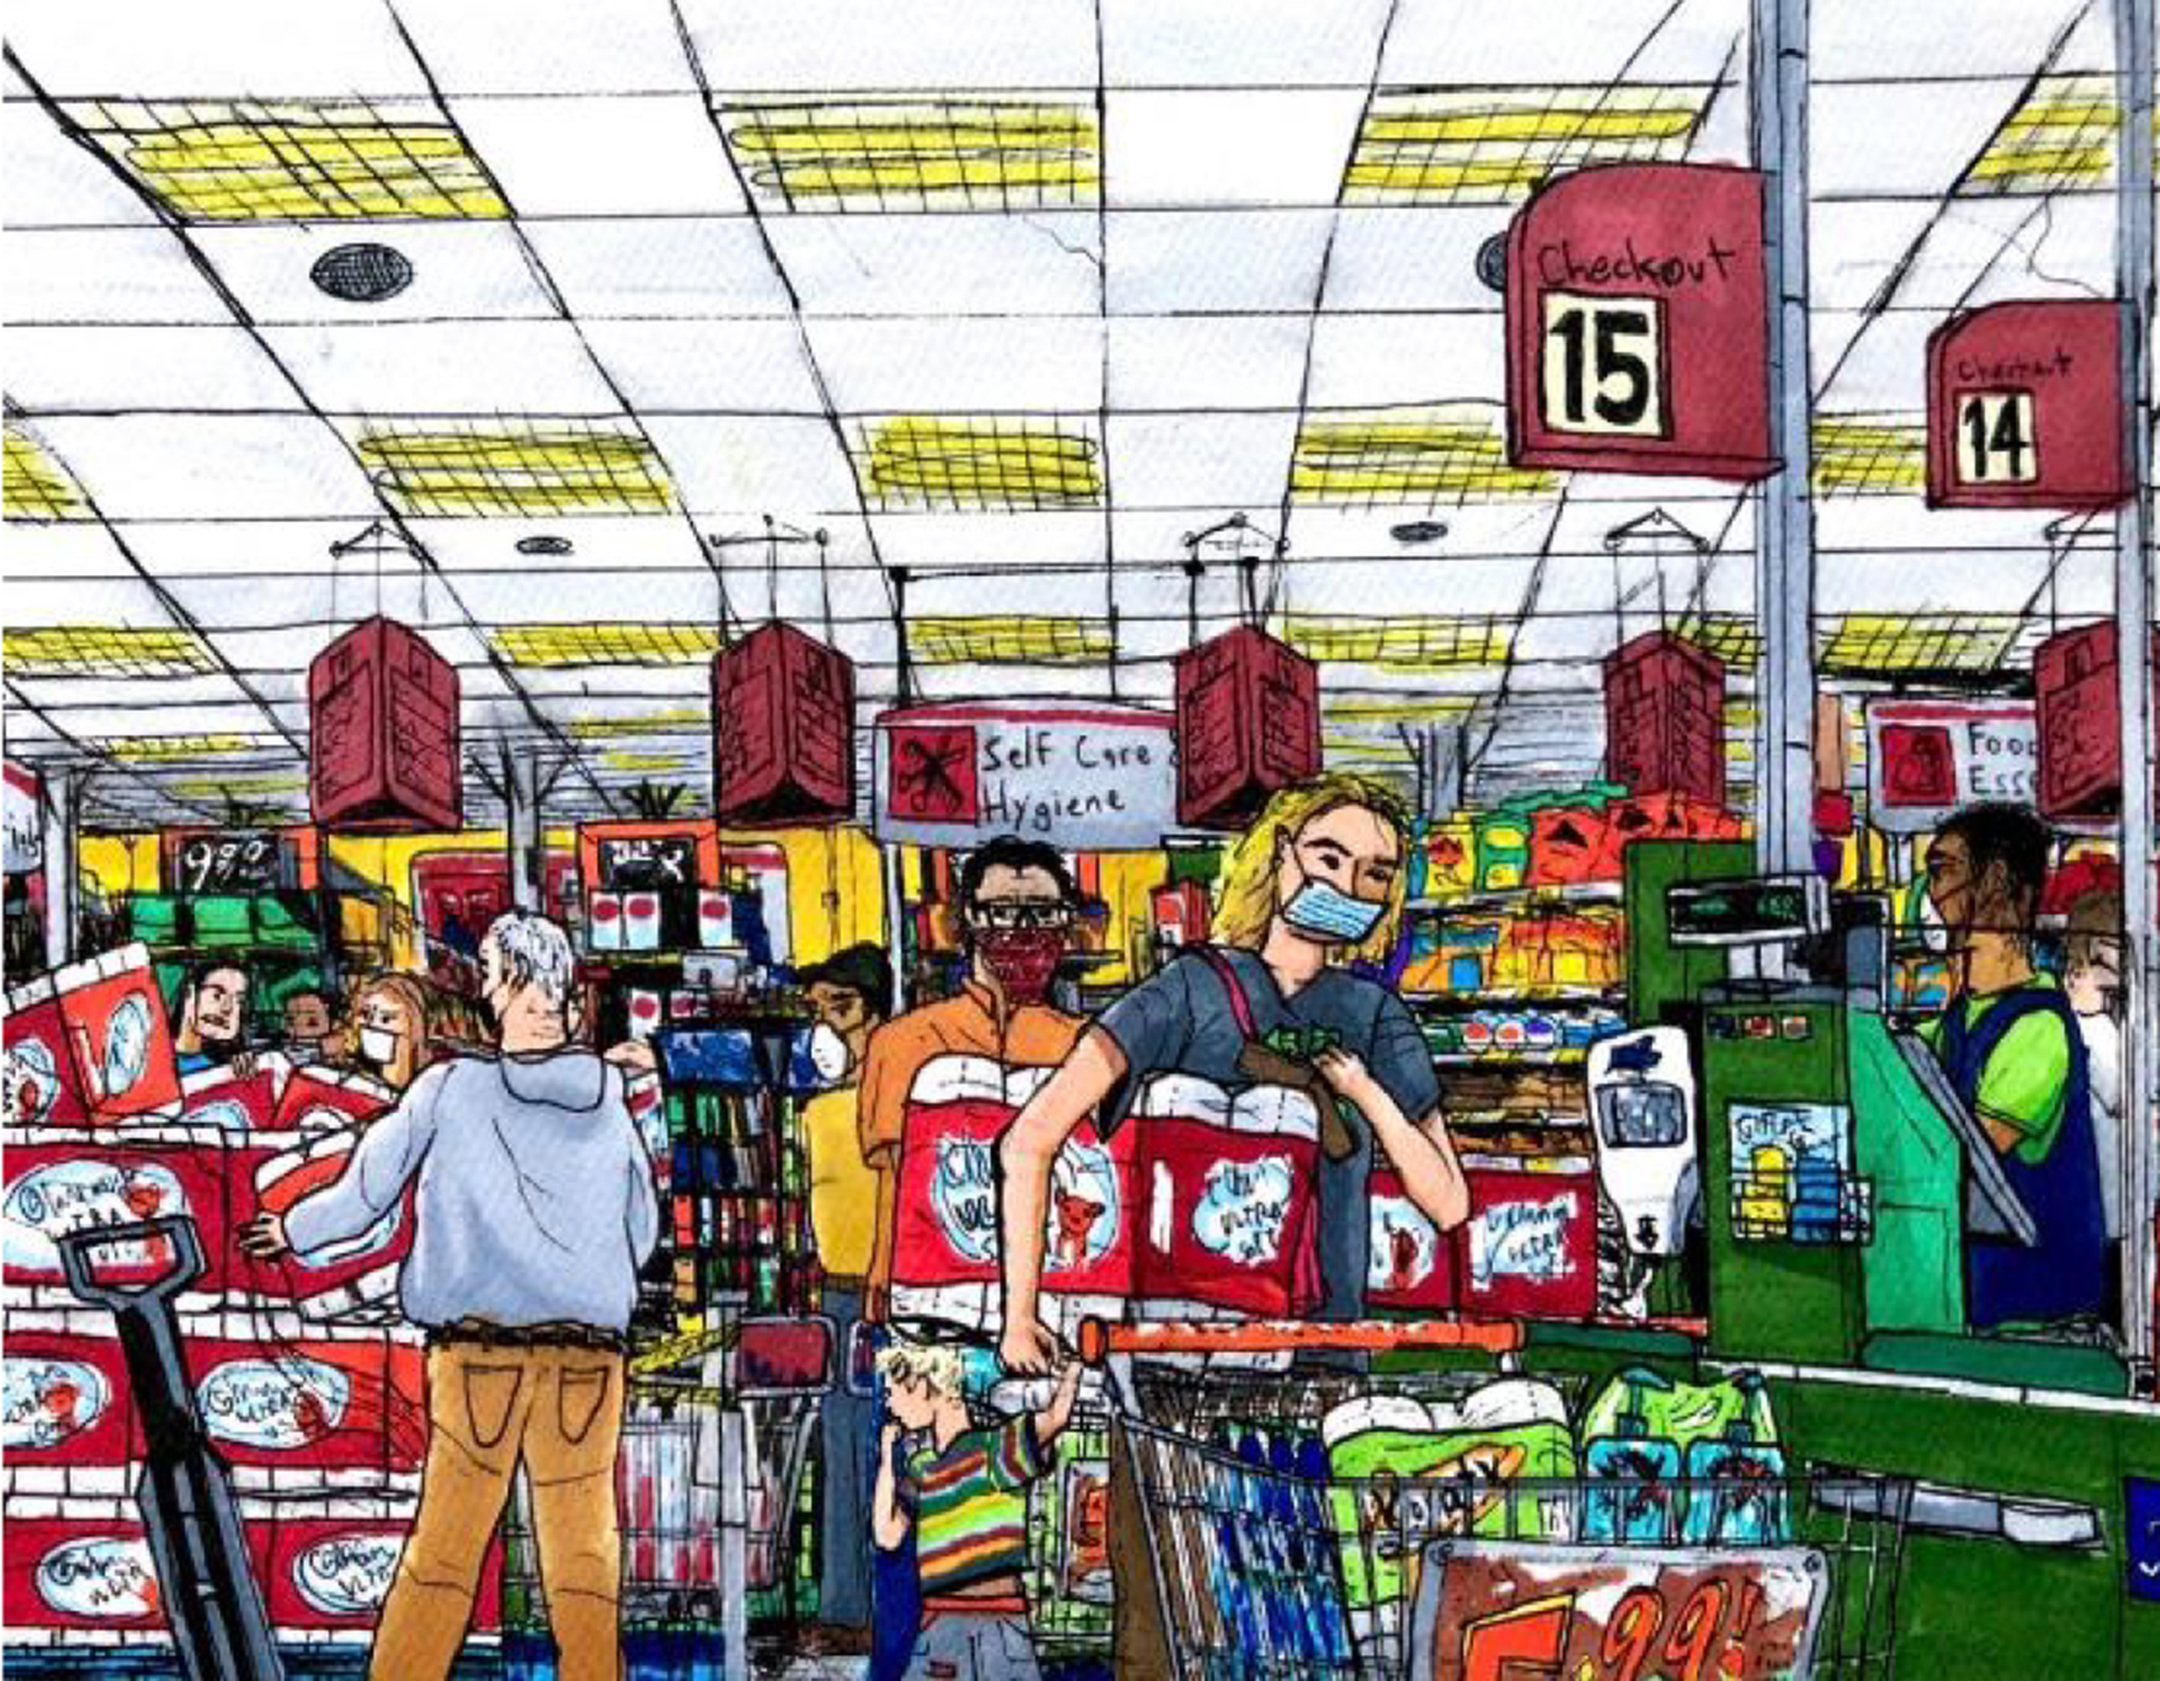 Colorful illustration of people shopping in a grocery store, wearing face masks and carrying essential items like toilet paper and cleaning supplies